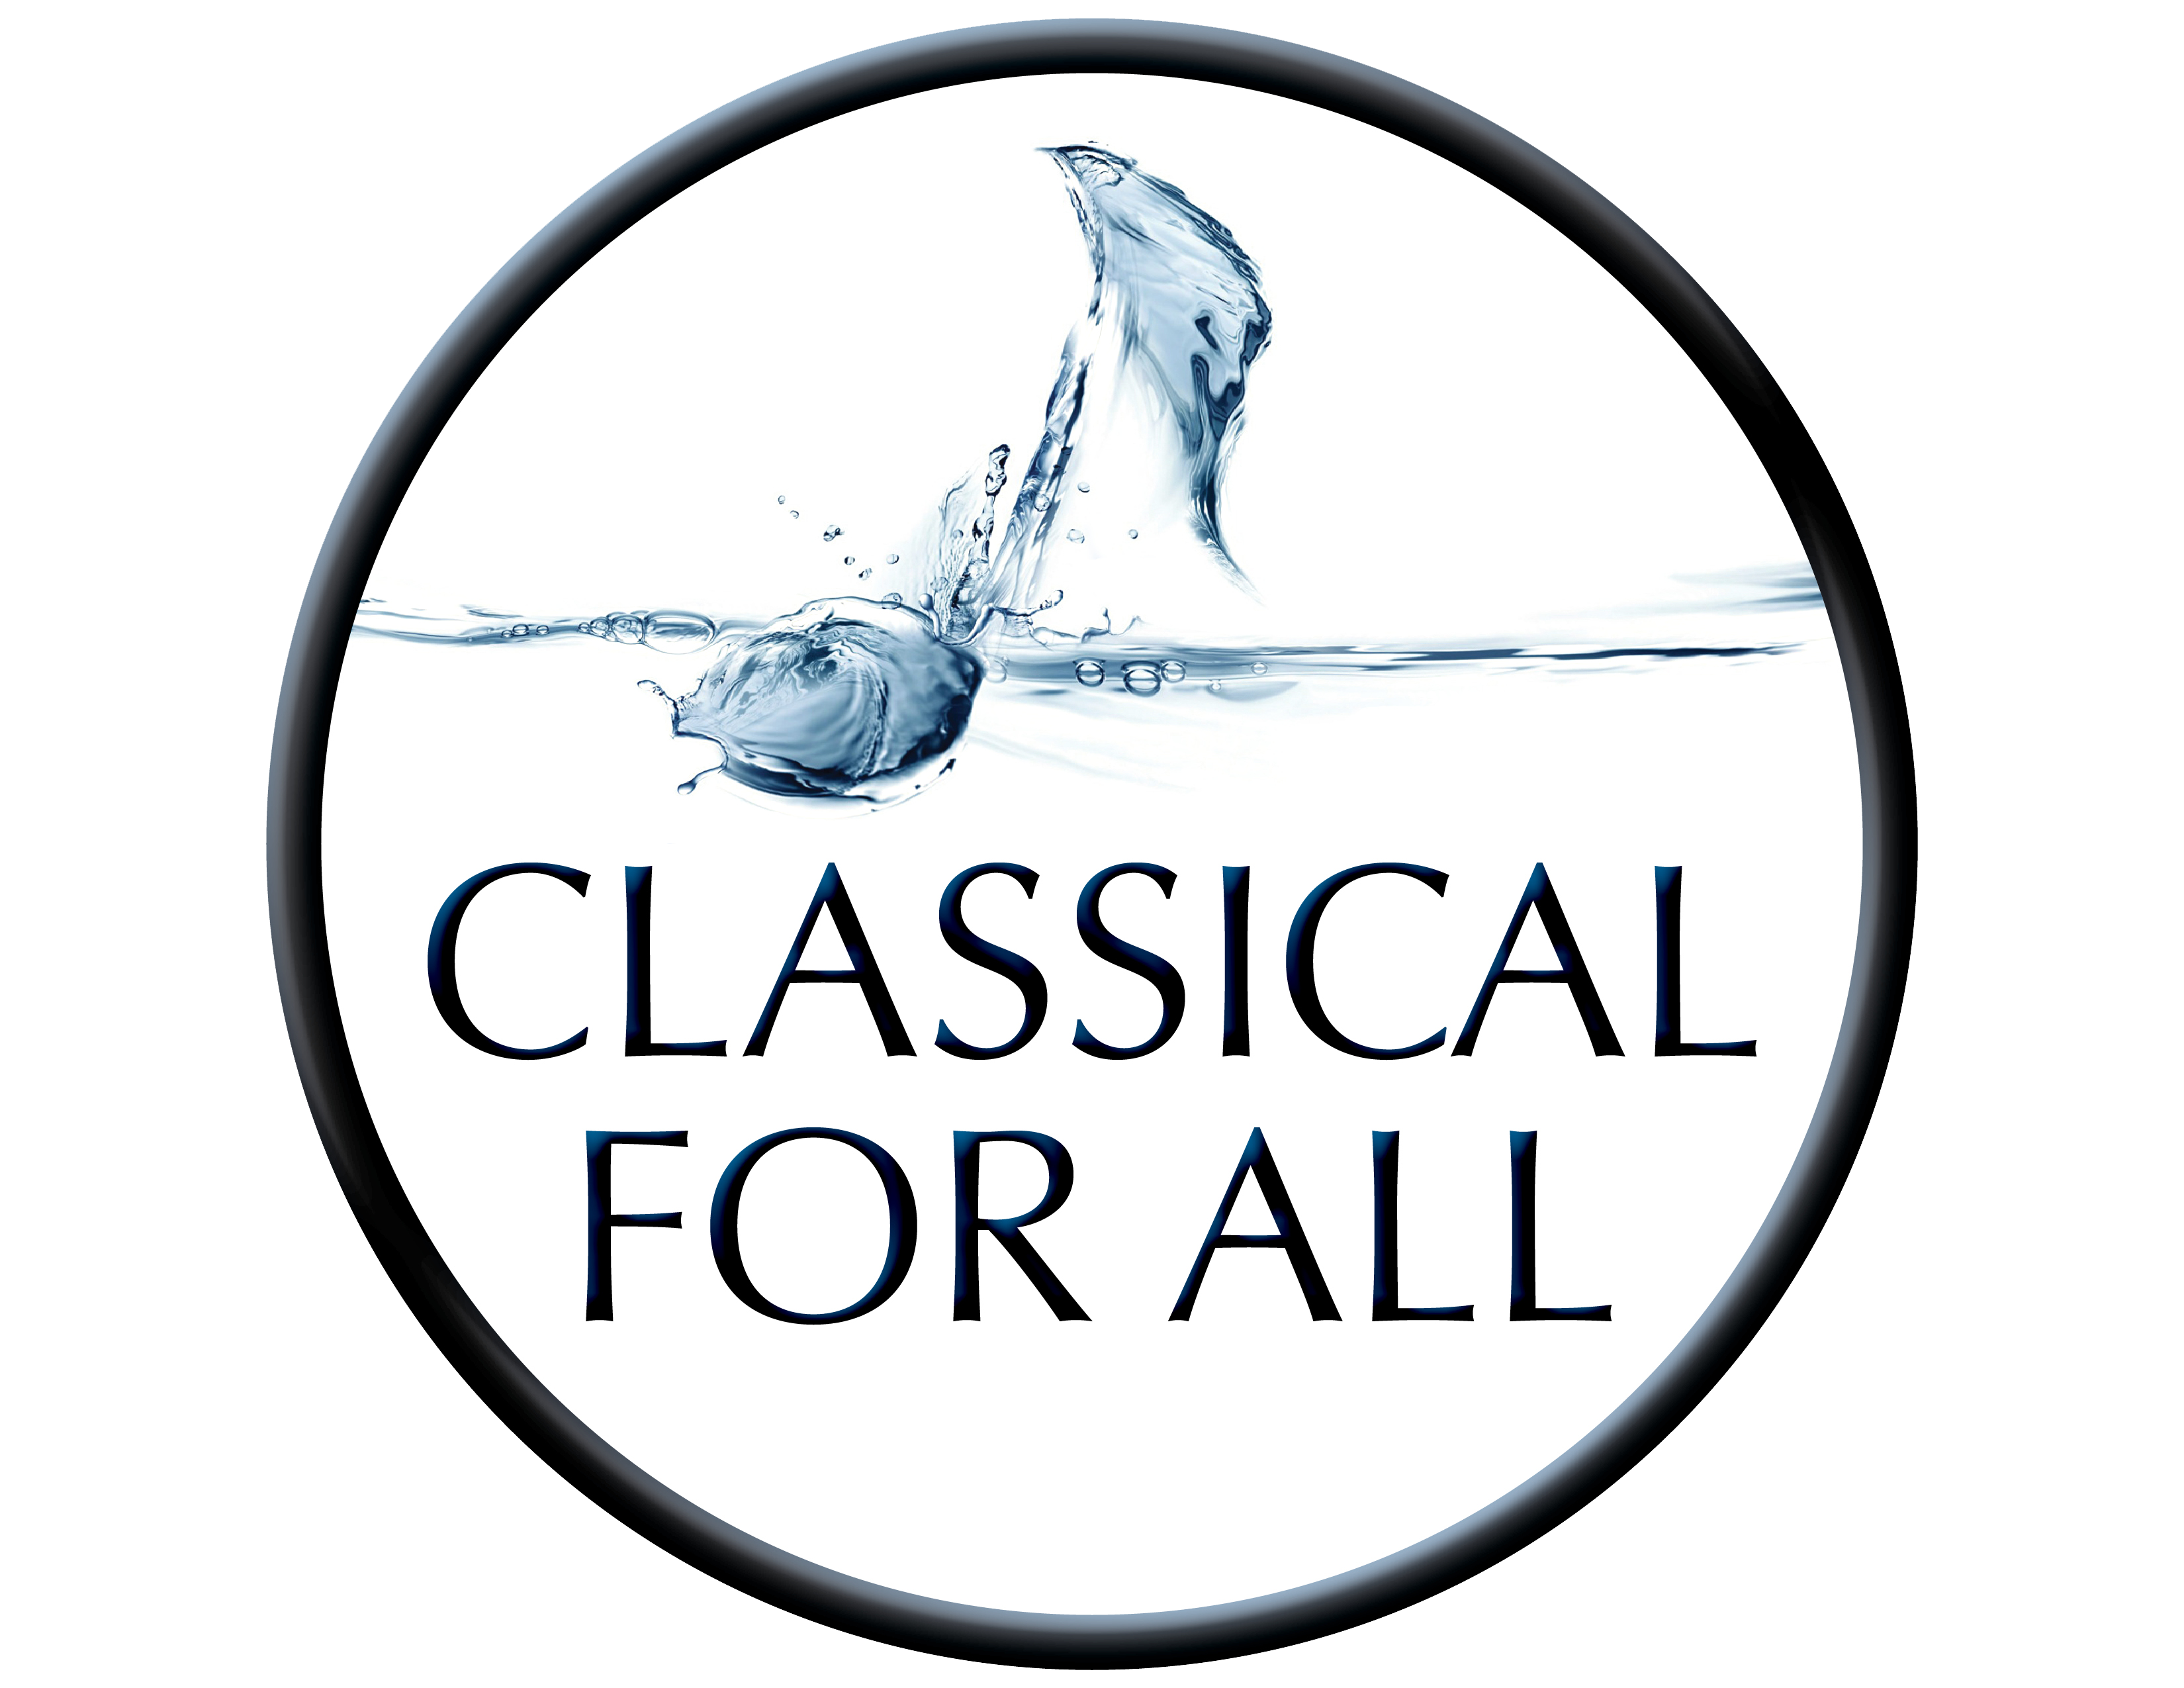 CLASSICAL 4 ALL My work in collaboration with pianist Emir Gamsizoglu